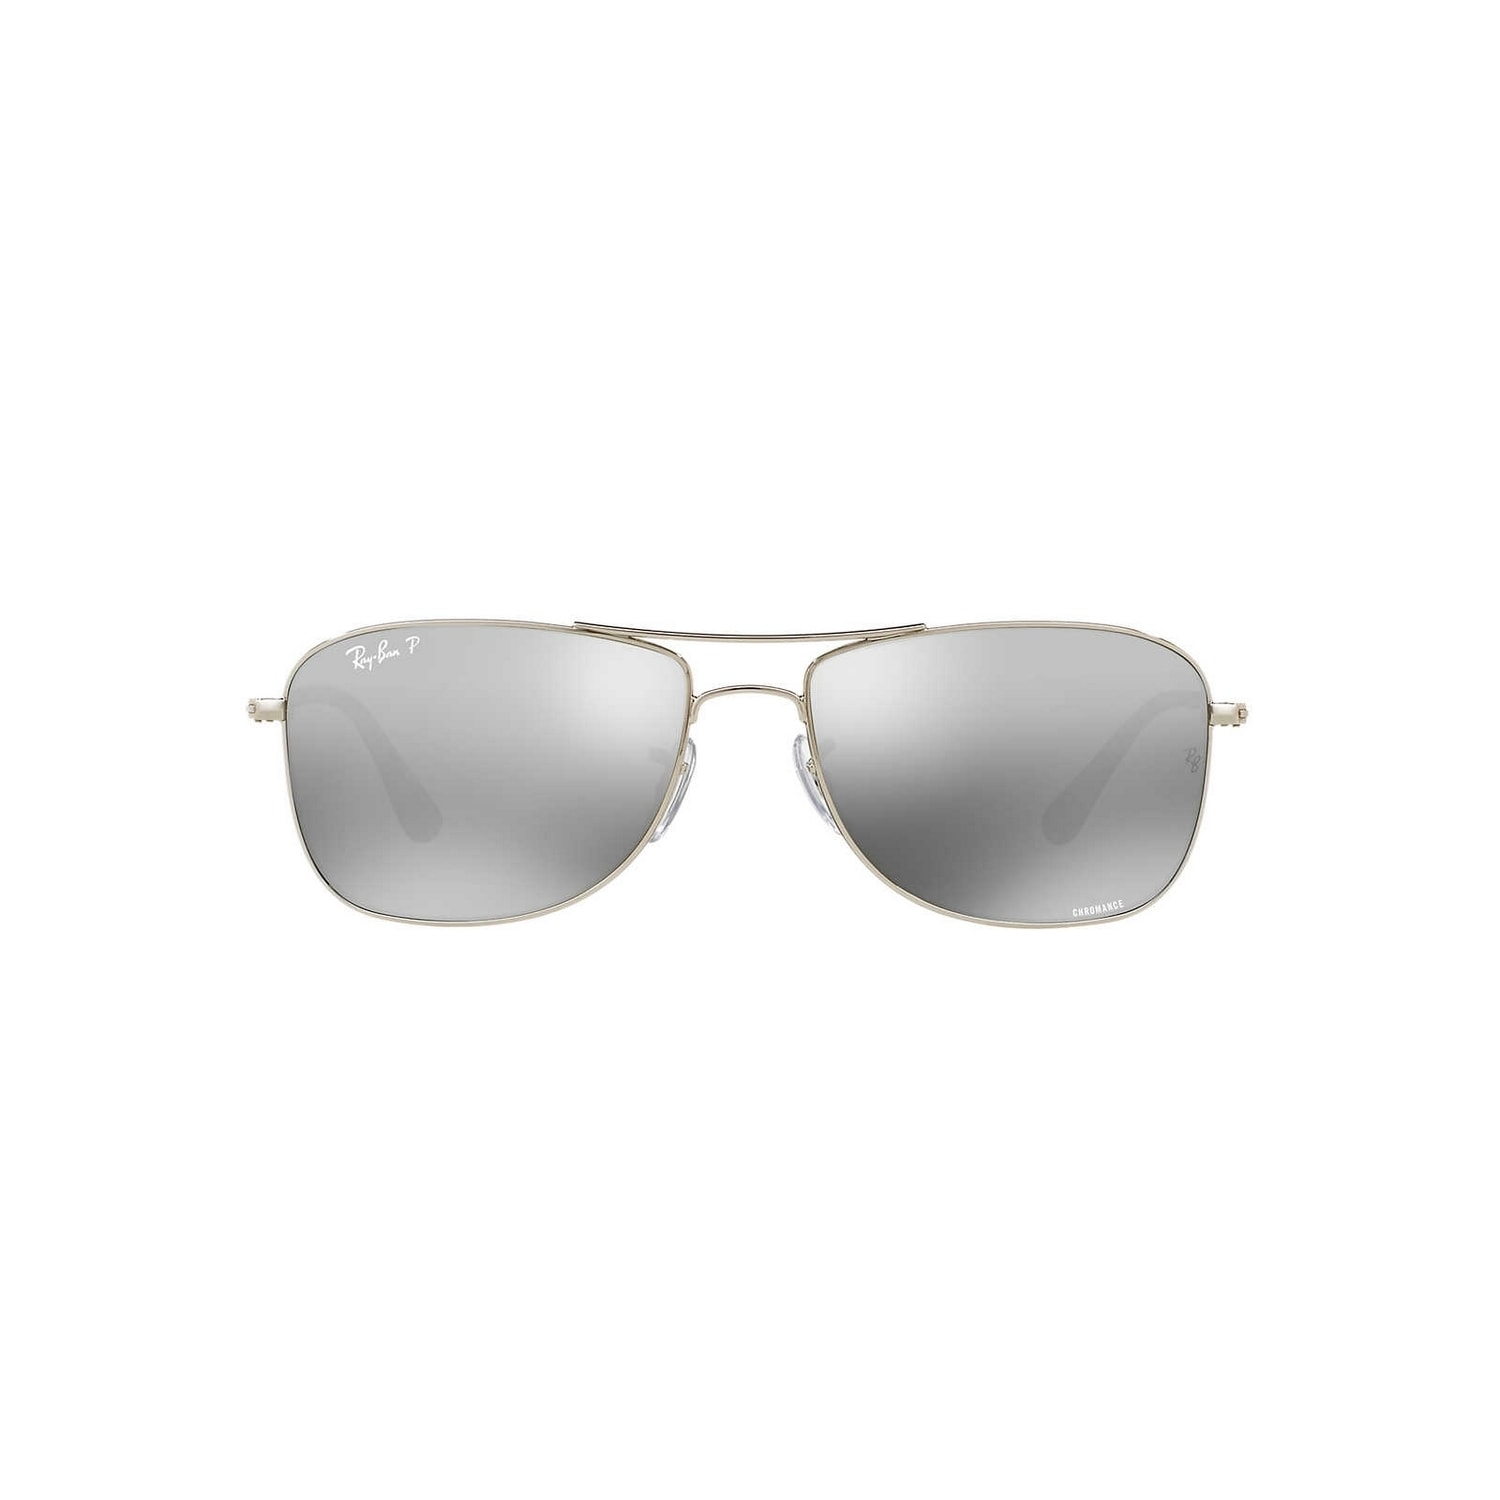 adc16f42c5b Shop Ray-Ban Unisex RB3543 003 5J 59 Aviator Metal Plastic Silver Grey  Sunglasses - Ships To Canada - Overstock.ca - 14602335